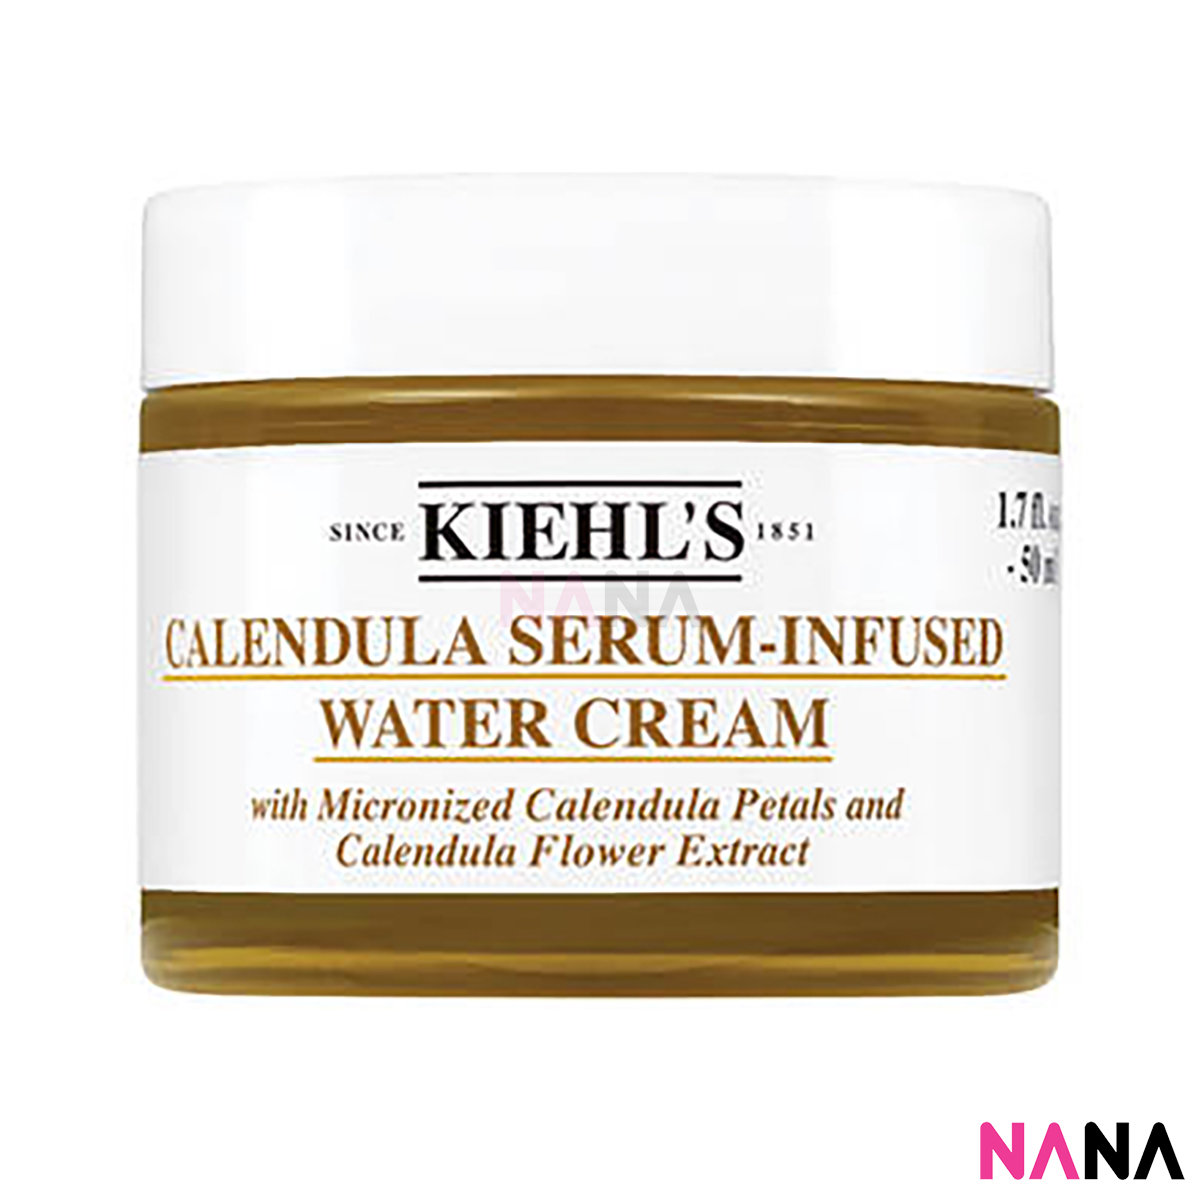 Calendula Serum-Infused Water Cream 50ml